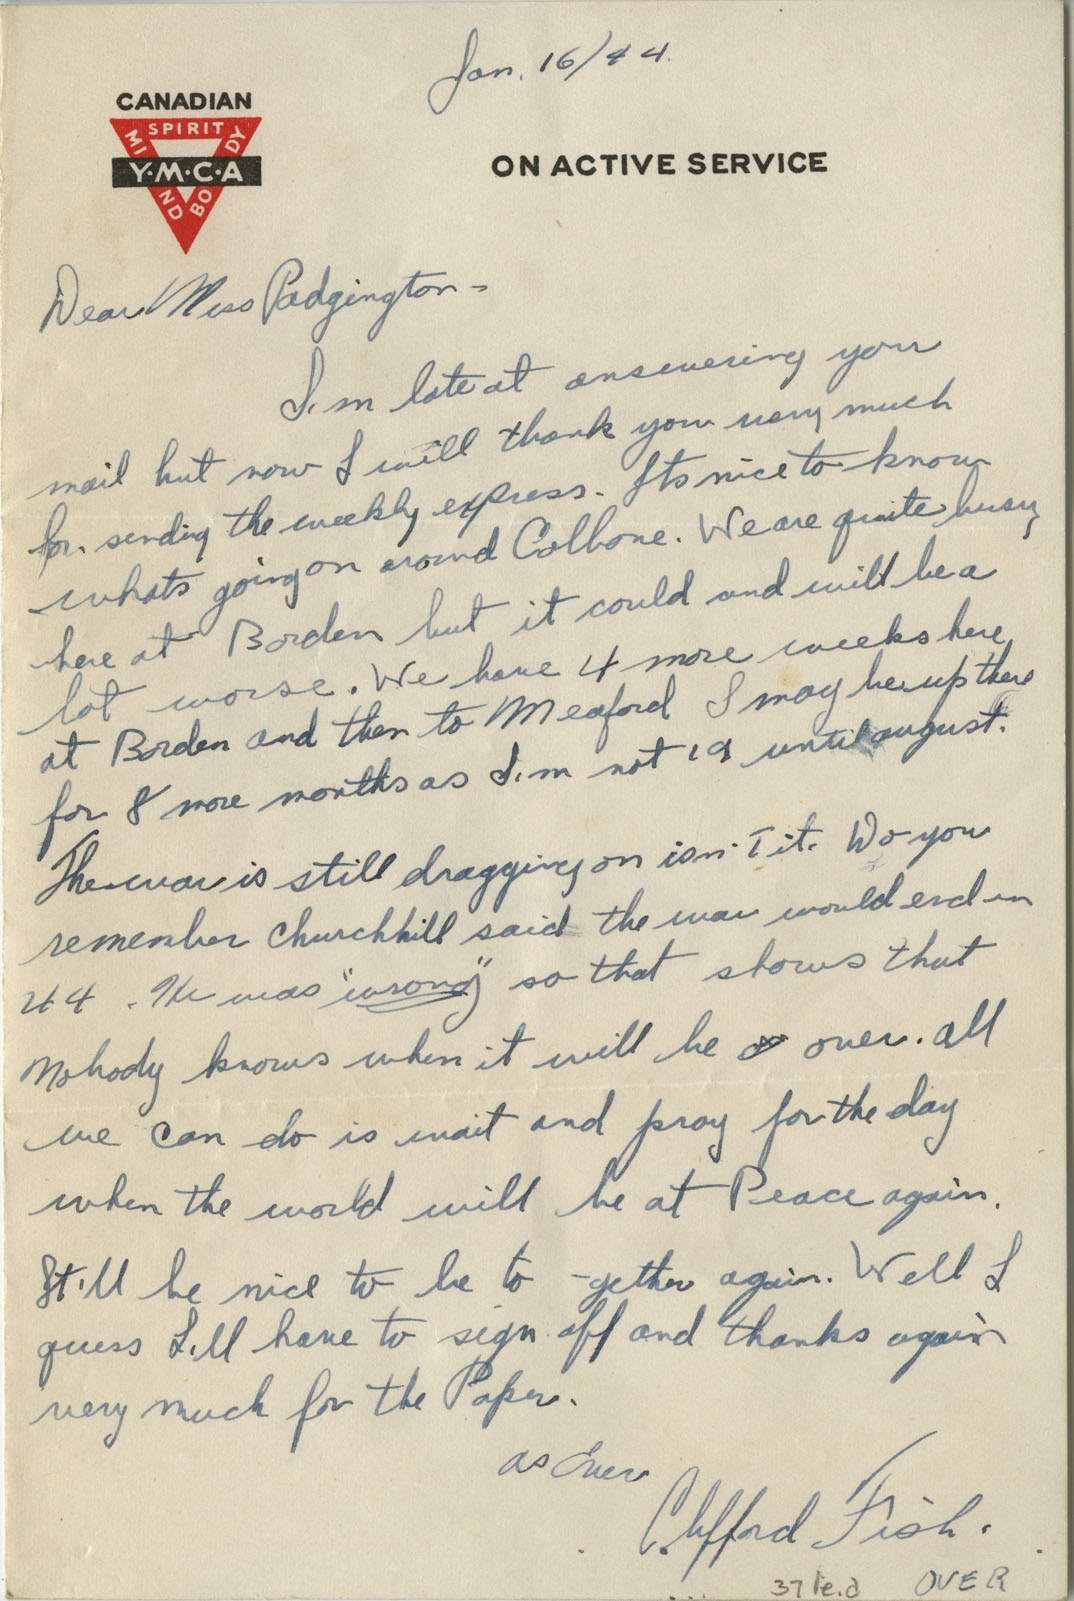 Letter from Pte. Clifford C. Fish to Eliza J. Padginton